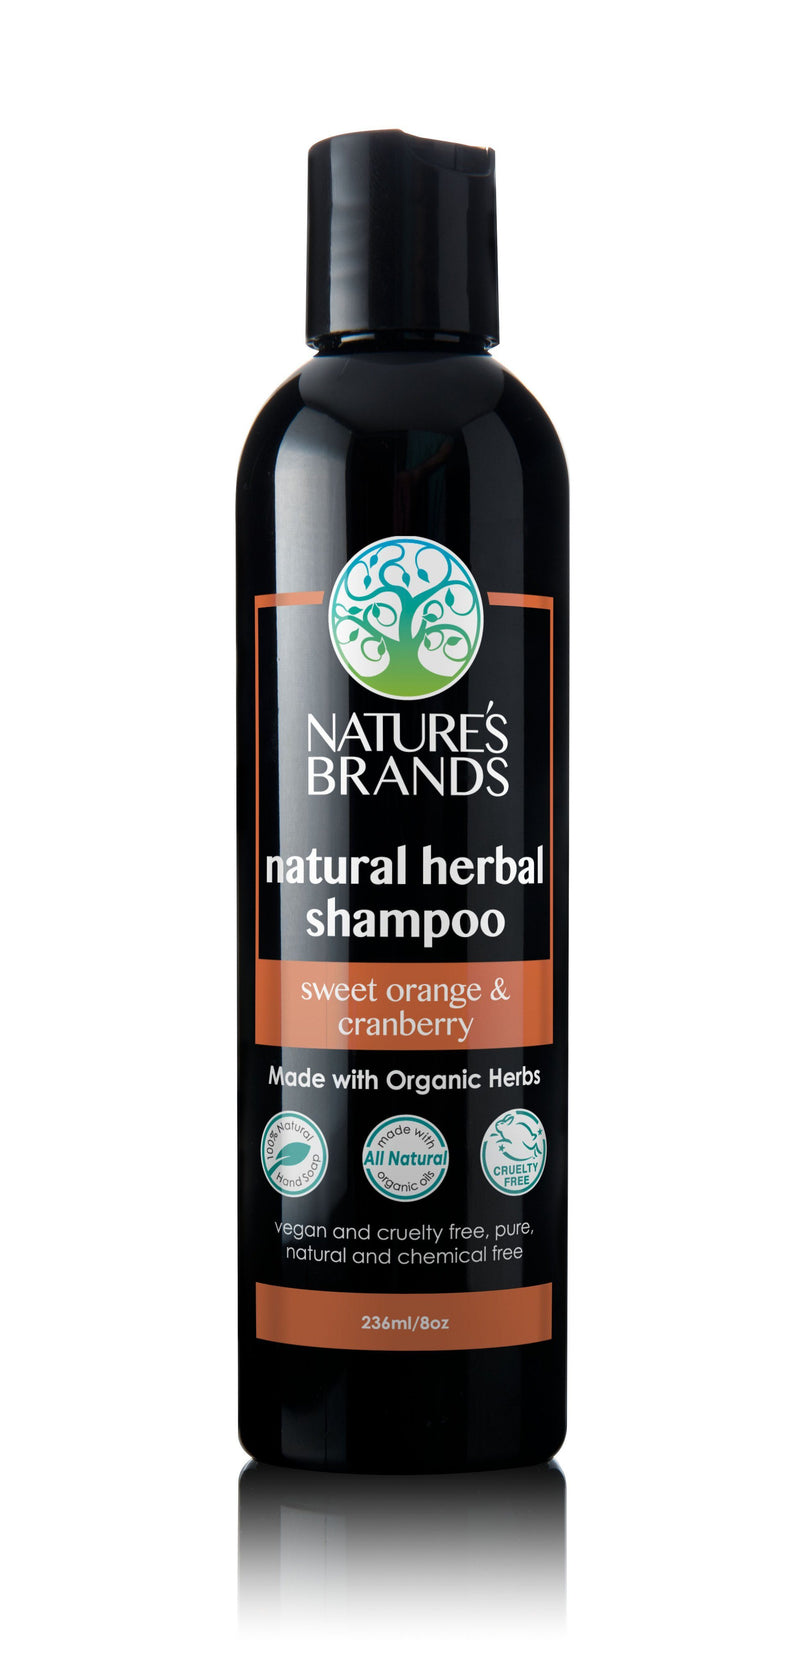 Herbal Choice Mari Natural Shampoo, Sweet Orange & Cranberry; Made with Organic - Herbal Choice Mari Natural Shampoo, Sweet Orange & Cranberry; Made with Organic - 8floz